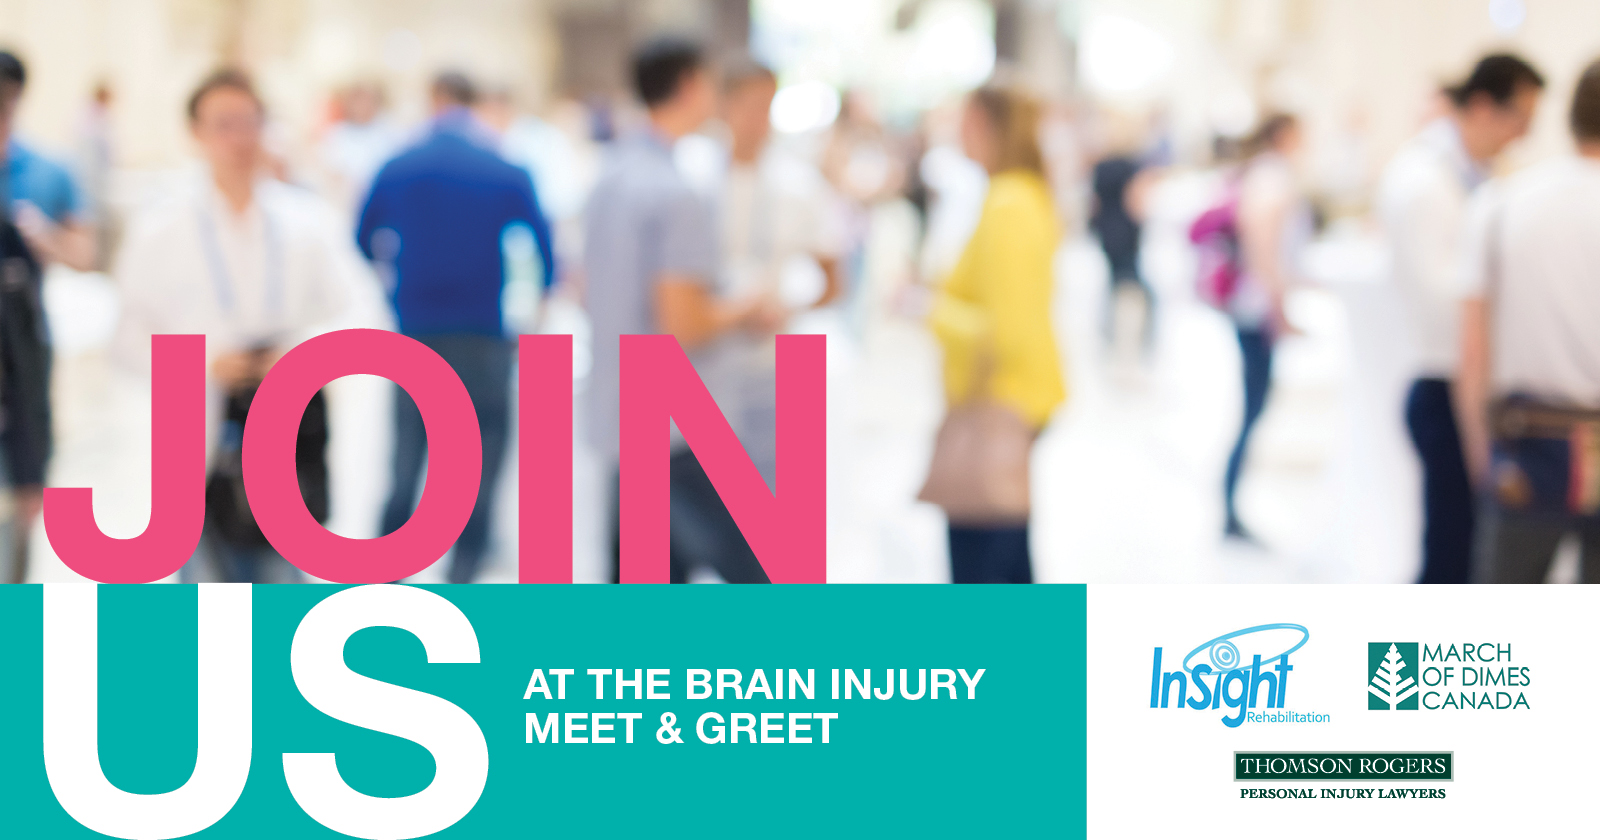 2018 meet and greet header for insight rehabilitation and march of dimes canada